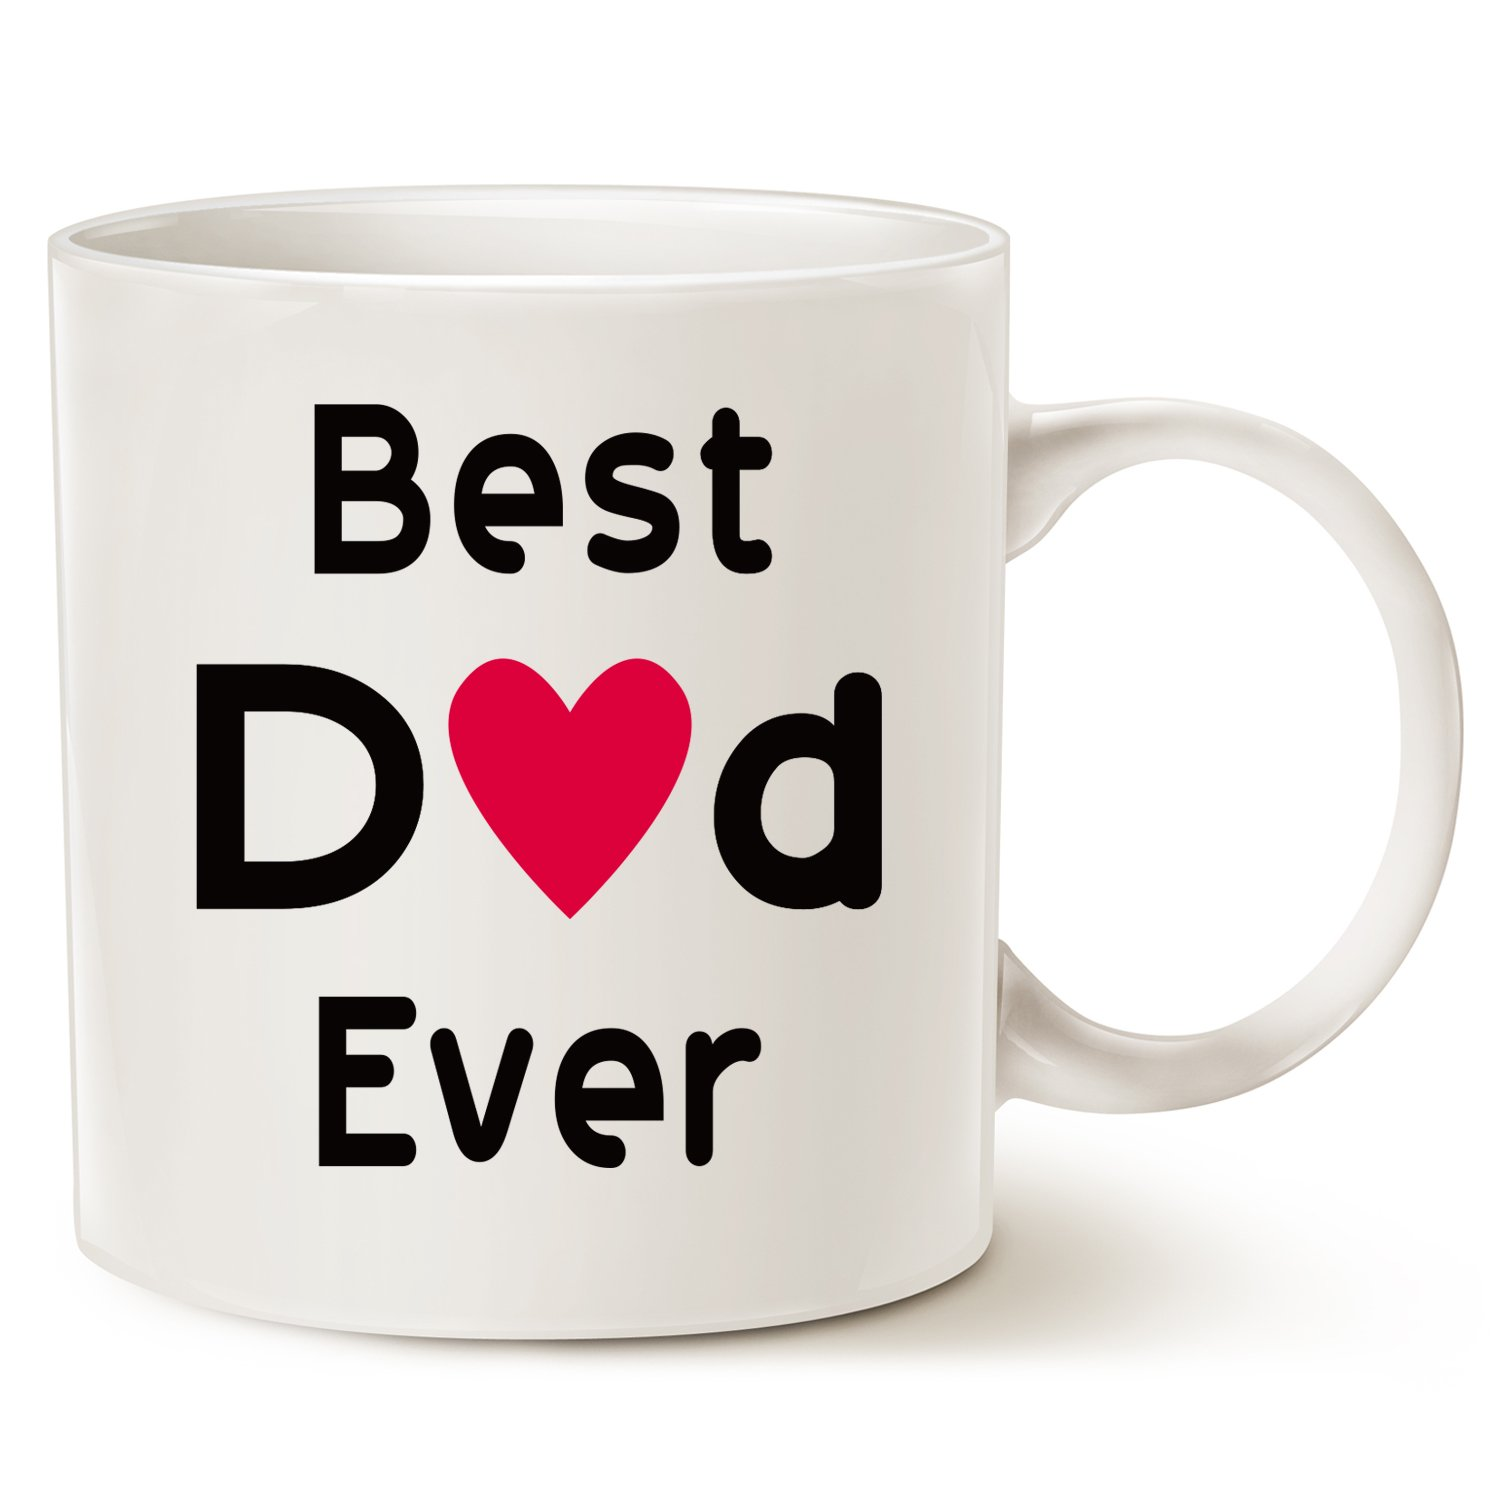 Christmas Gifts Mug for Dad, Best Dad Ever Cofee Mug Gifts Porcelain ...